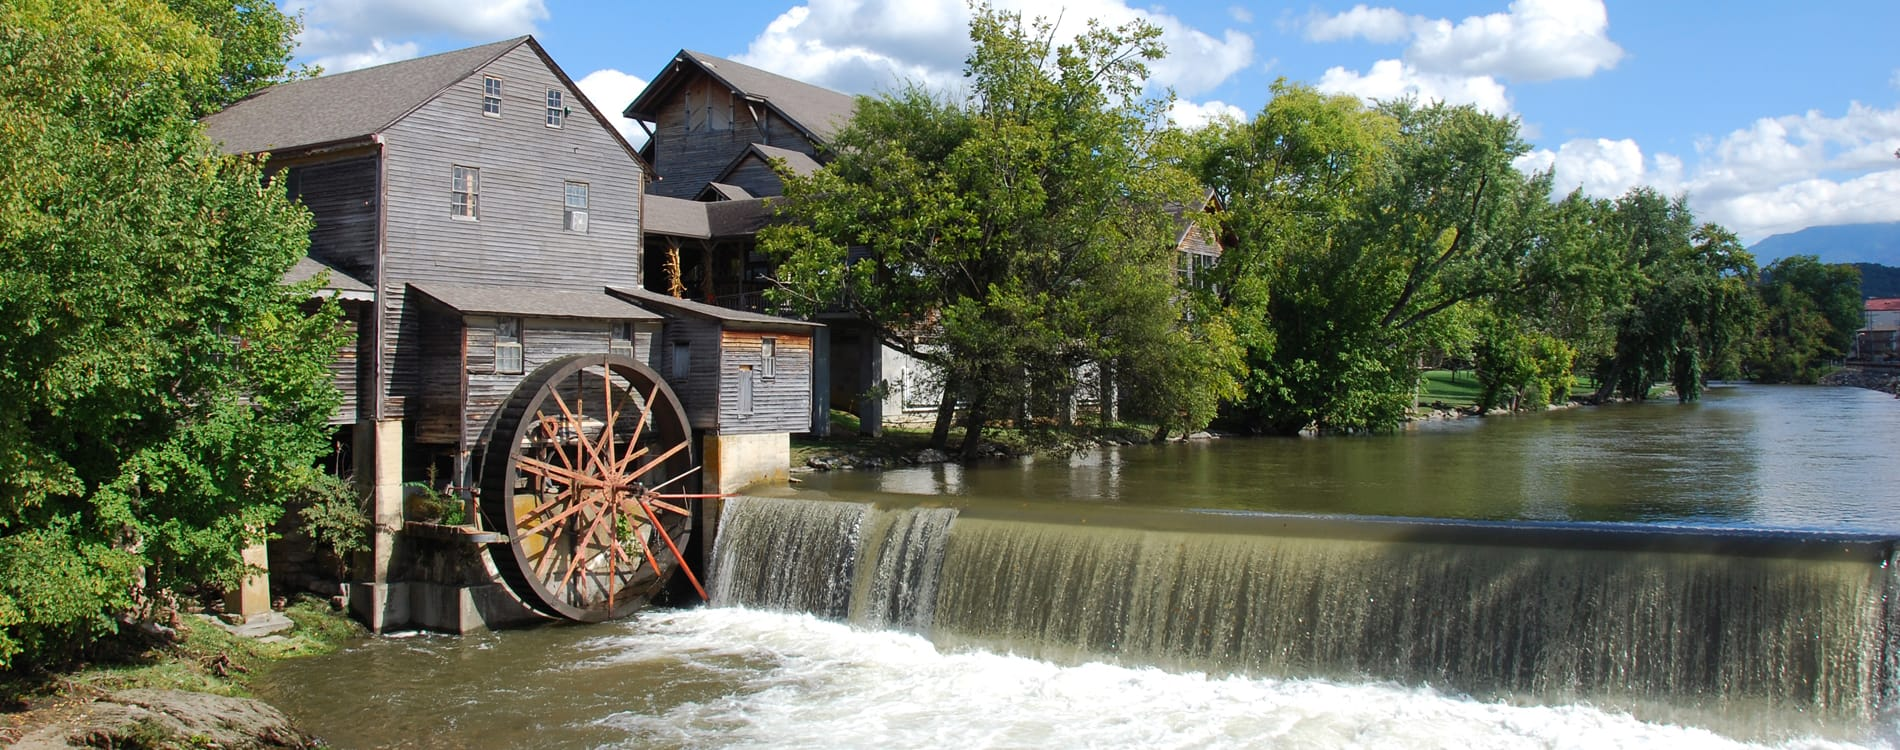 Pigeon Forge, TN - Old Mill and Waterfall